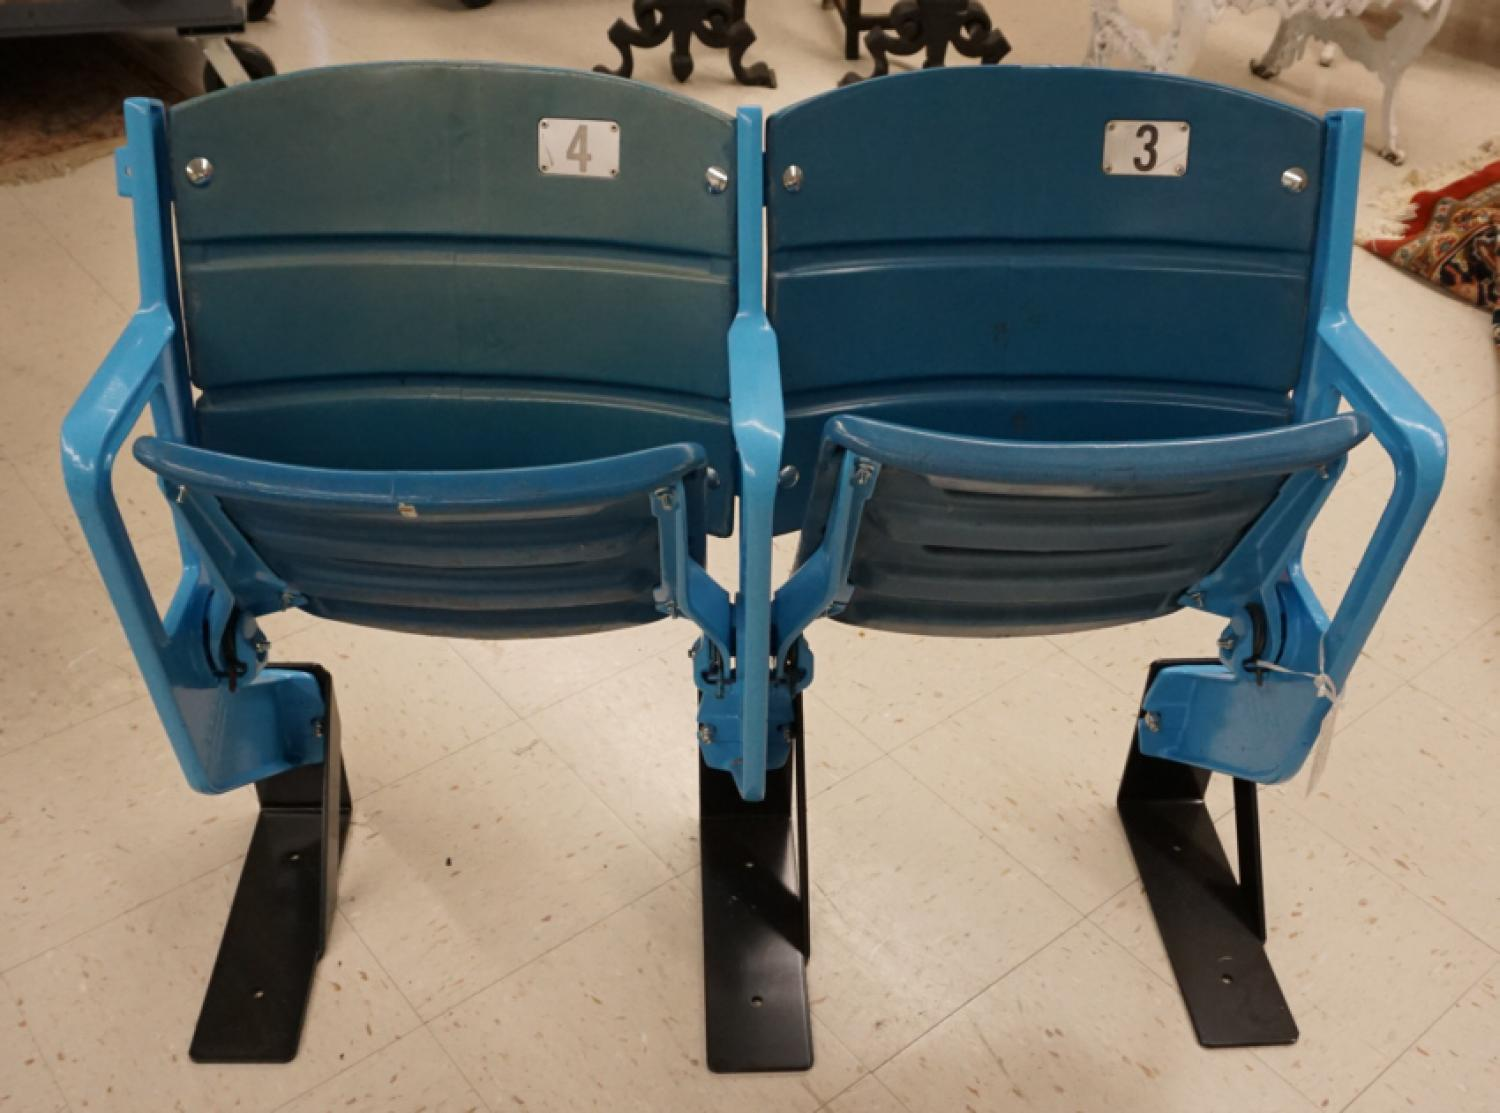 Authentic vintage commemorative Yankee Stadium double seat